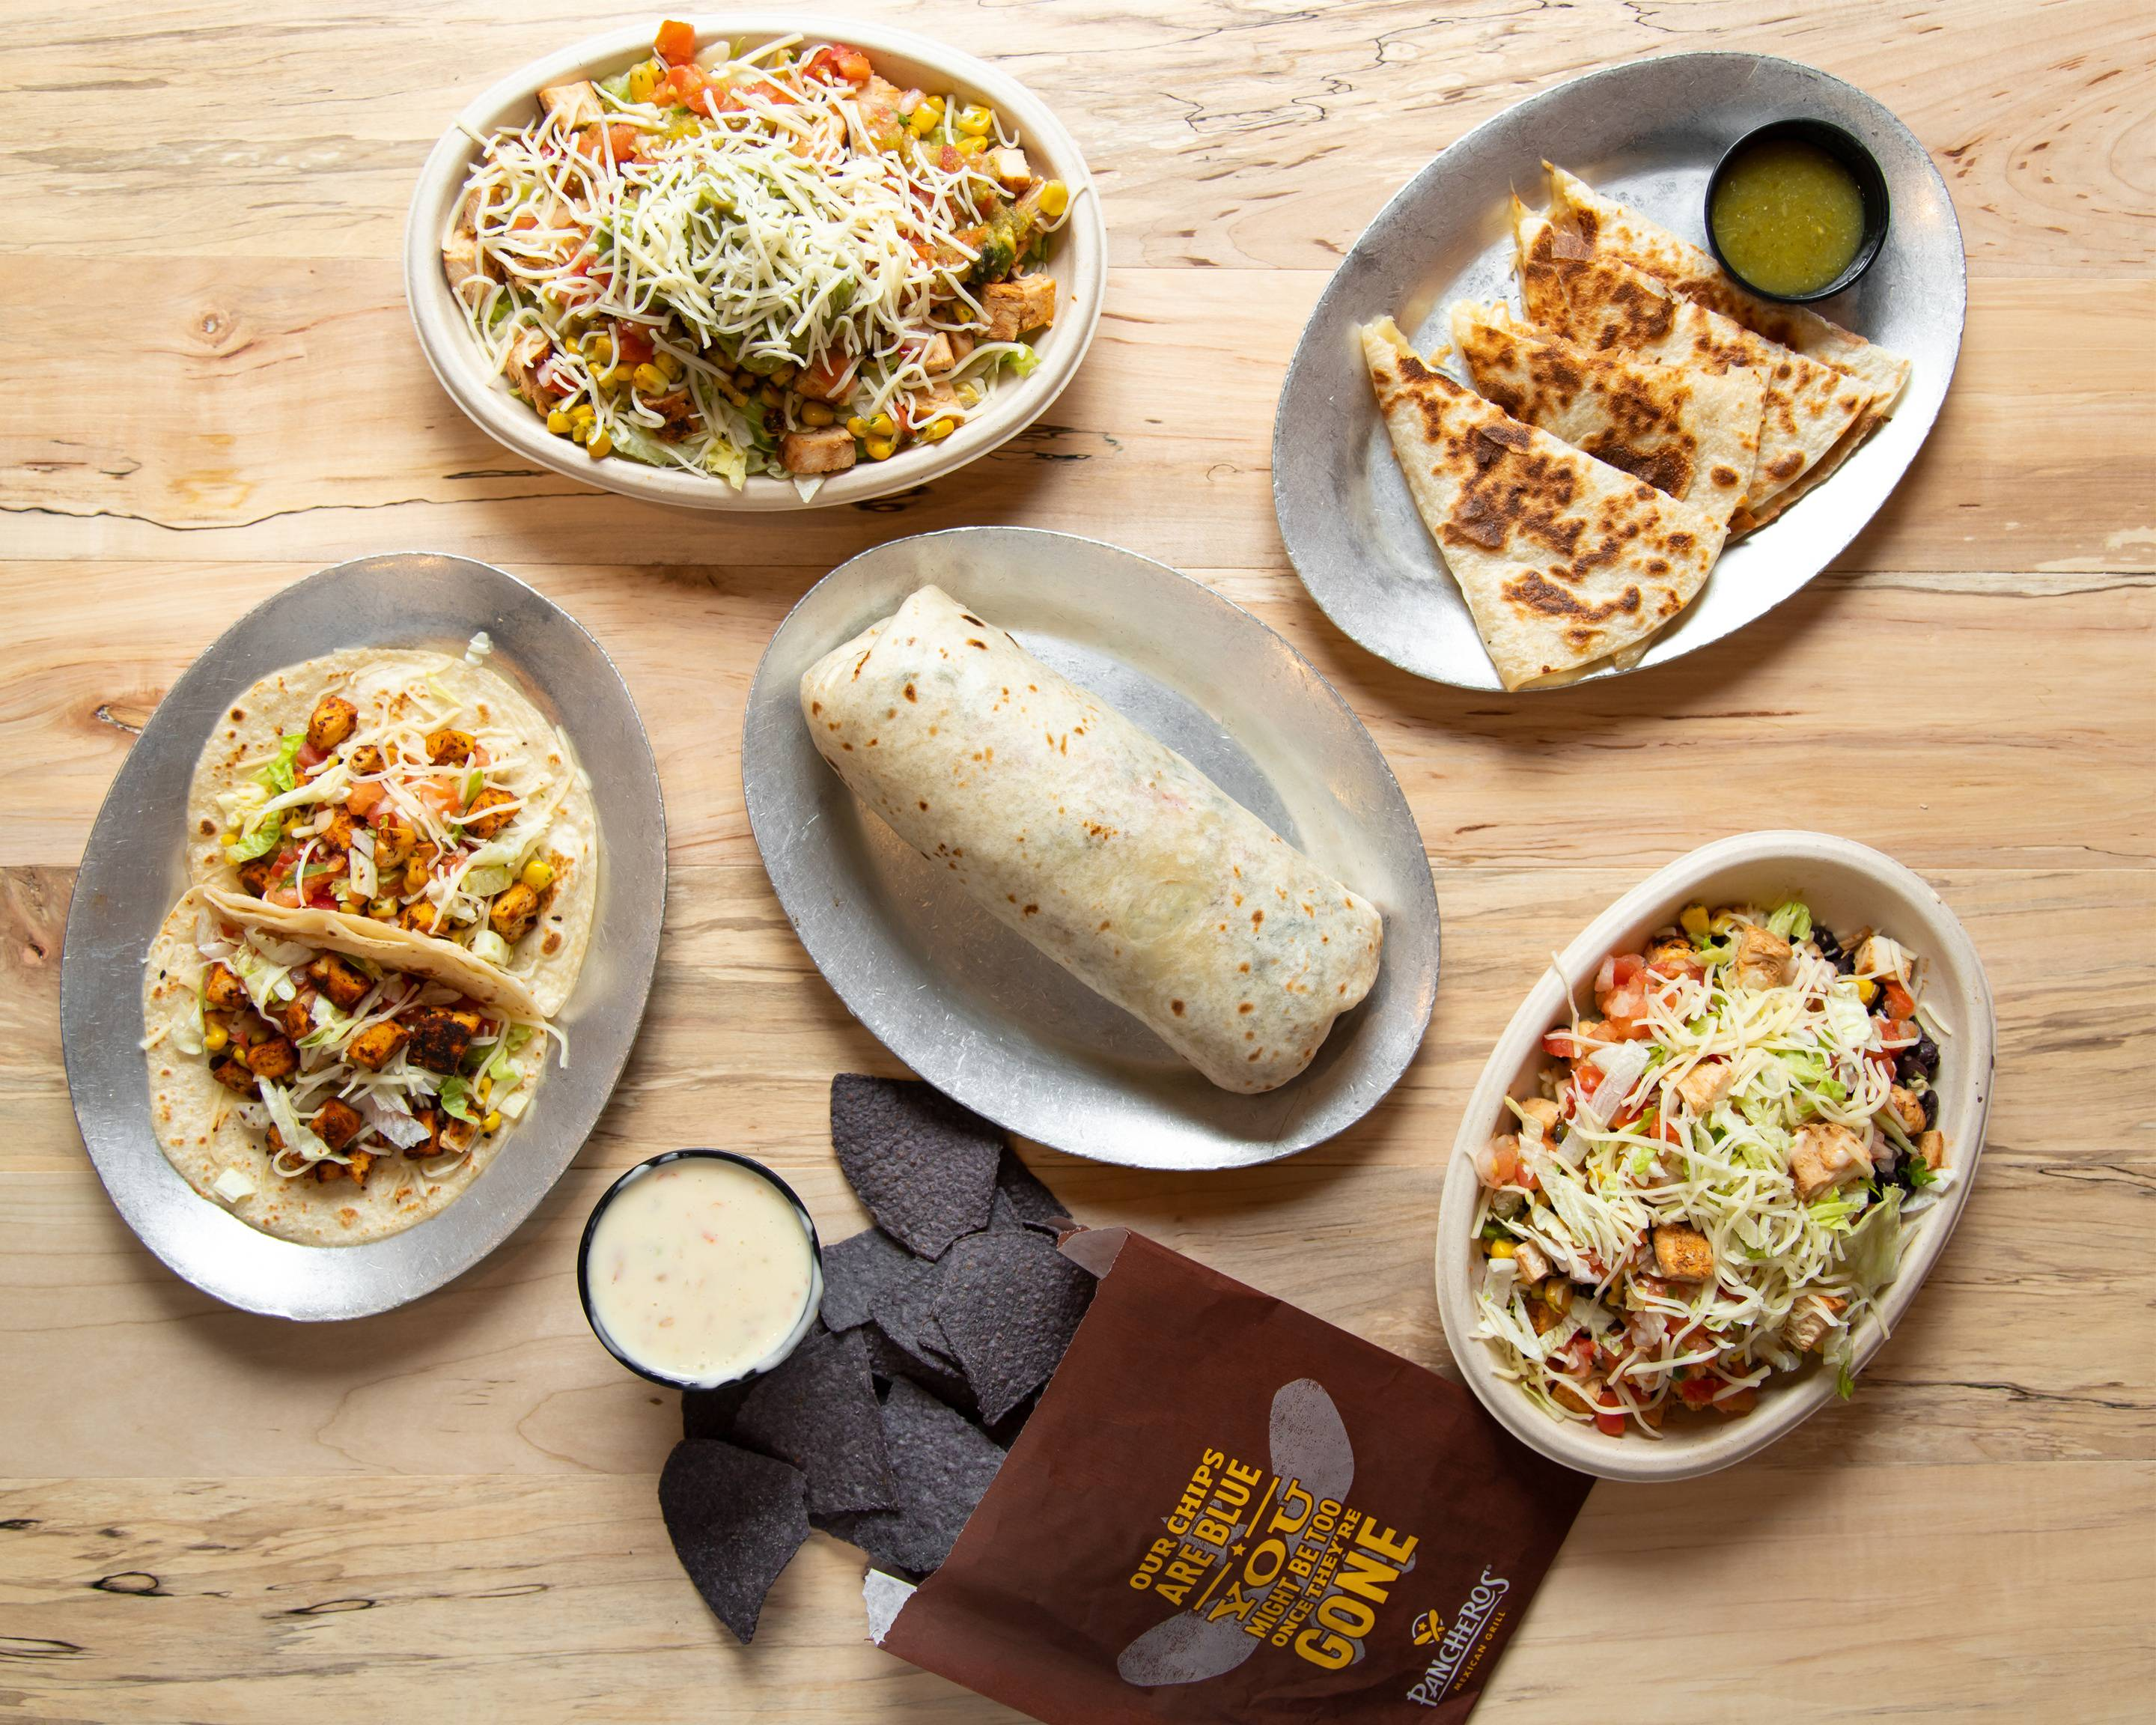 Pancheros Mexican Grill (1225 W Century Ave)